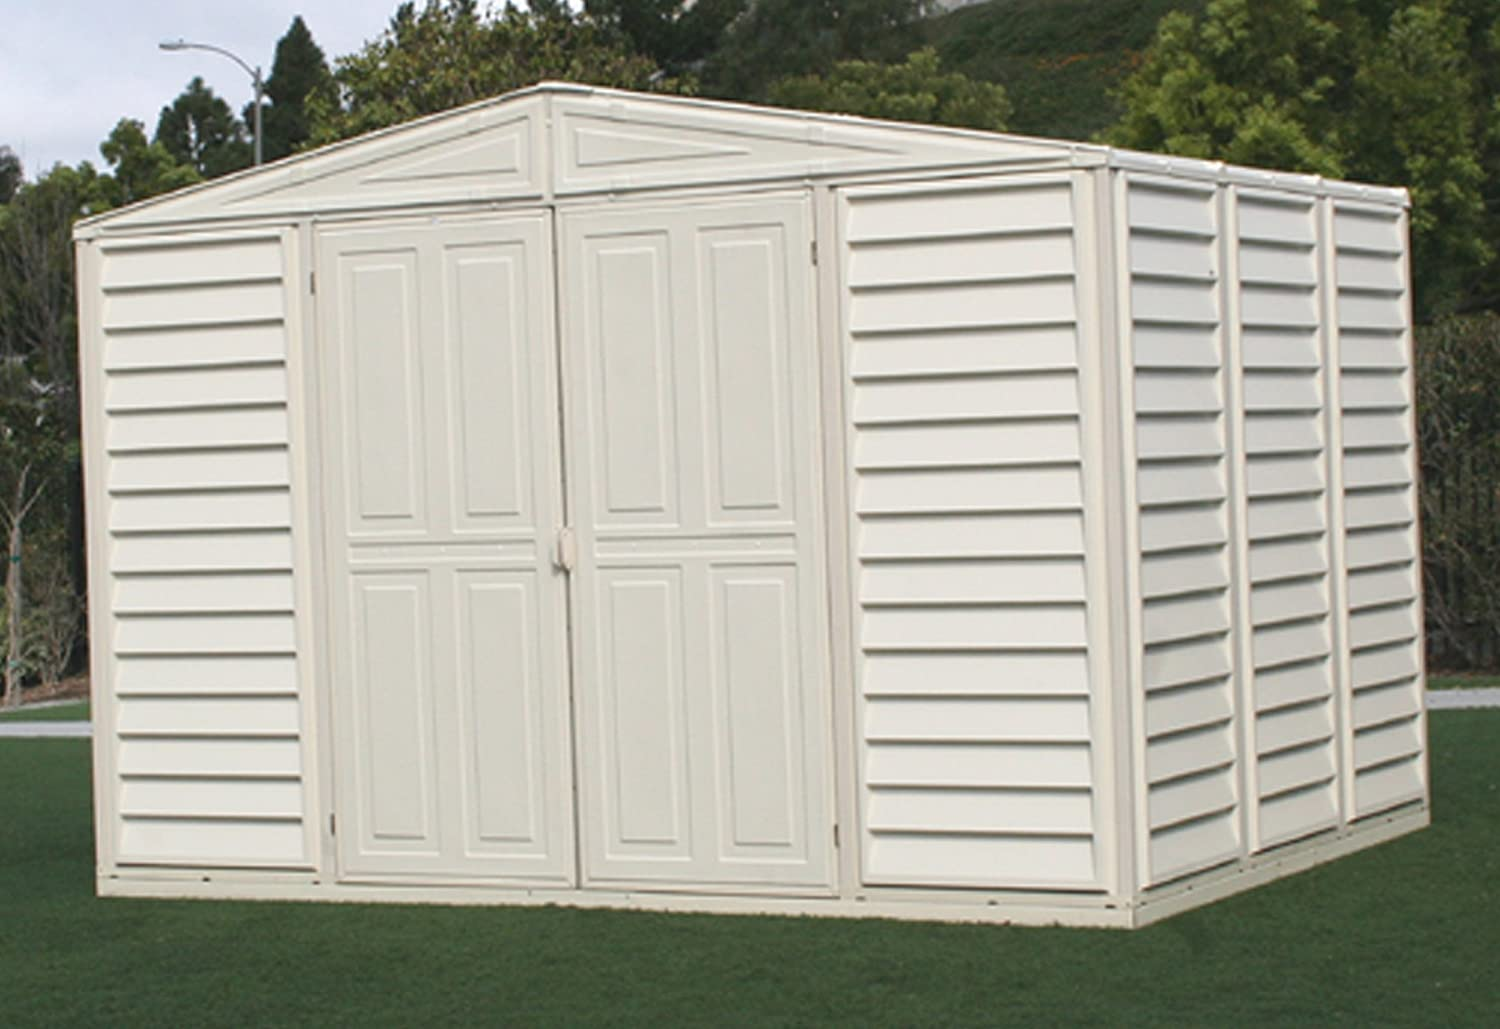 shed liberty min sheds lofted barn styles solutions storage vinyl